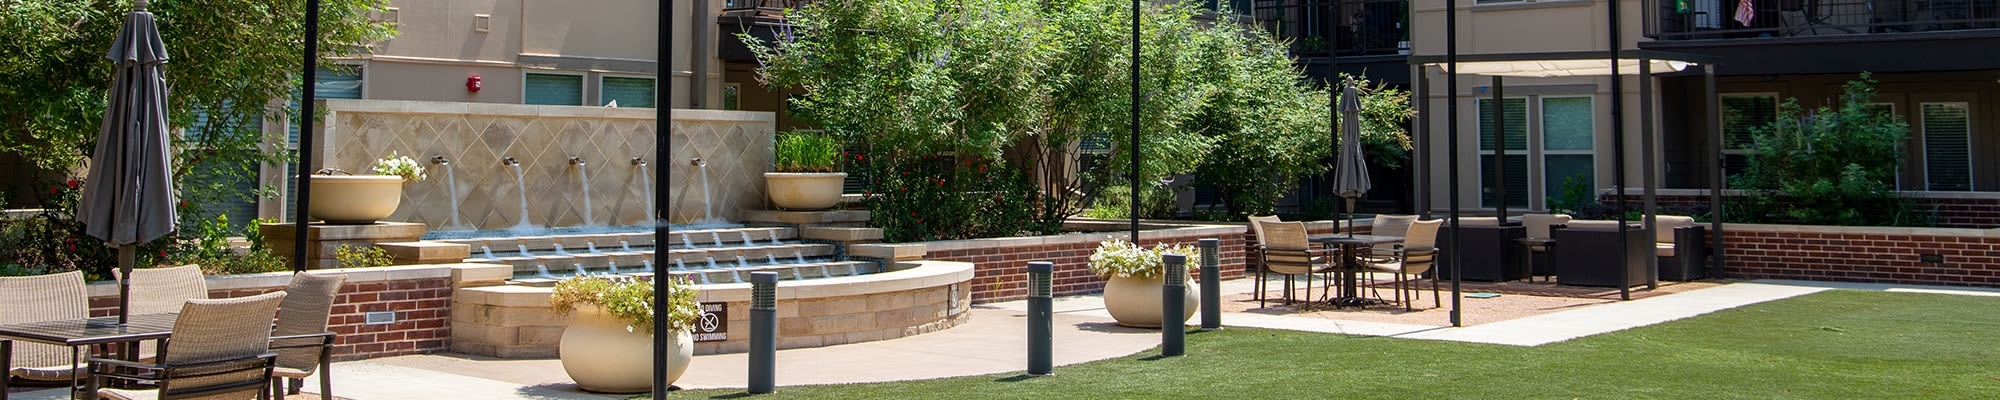 Culture & services at Watermere at Frisco in Frisco, Texas